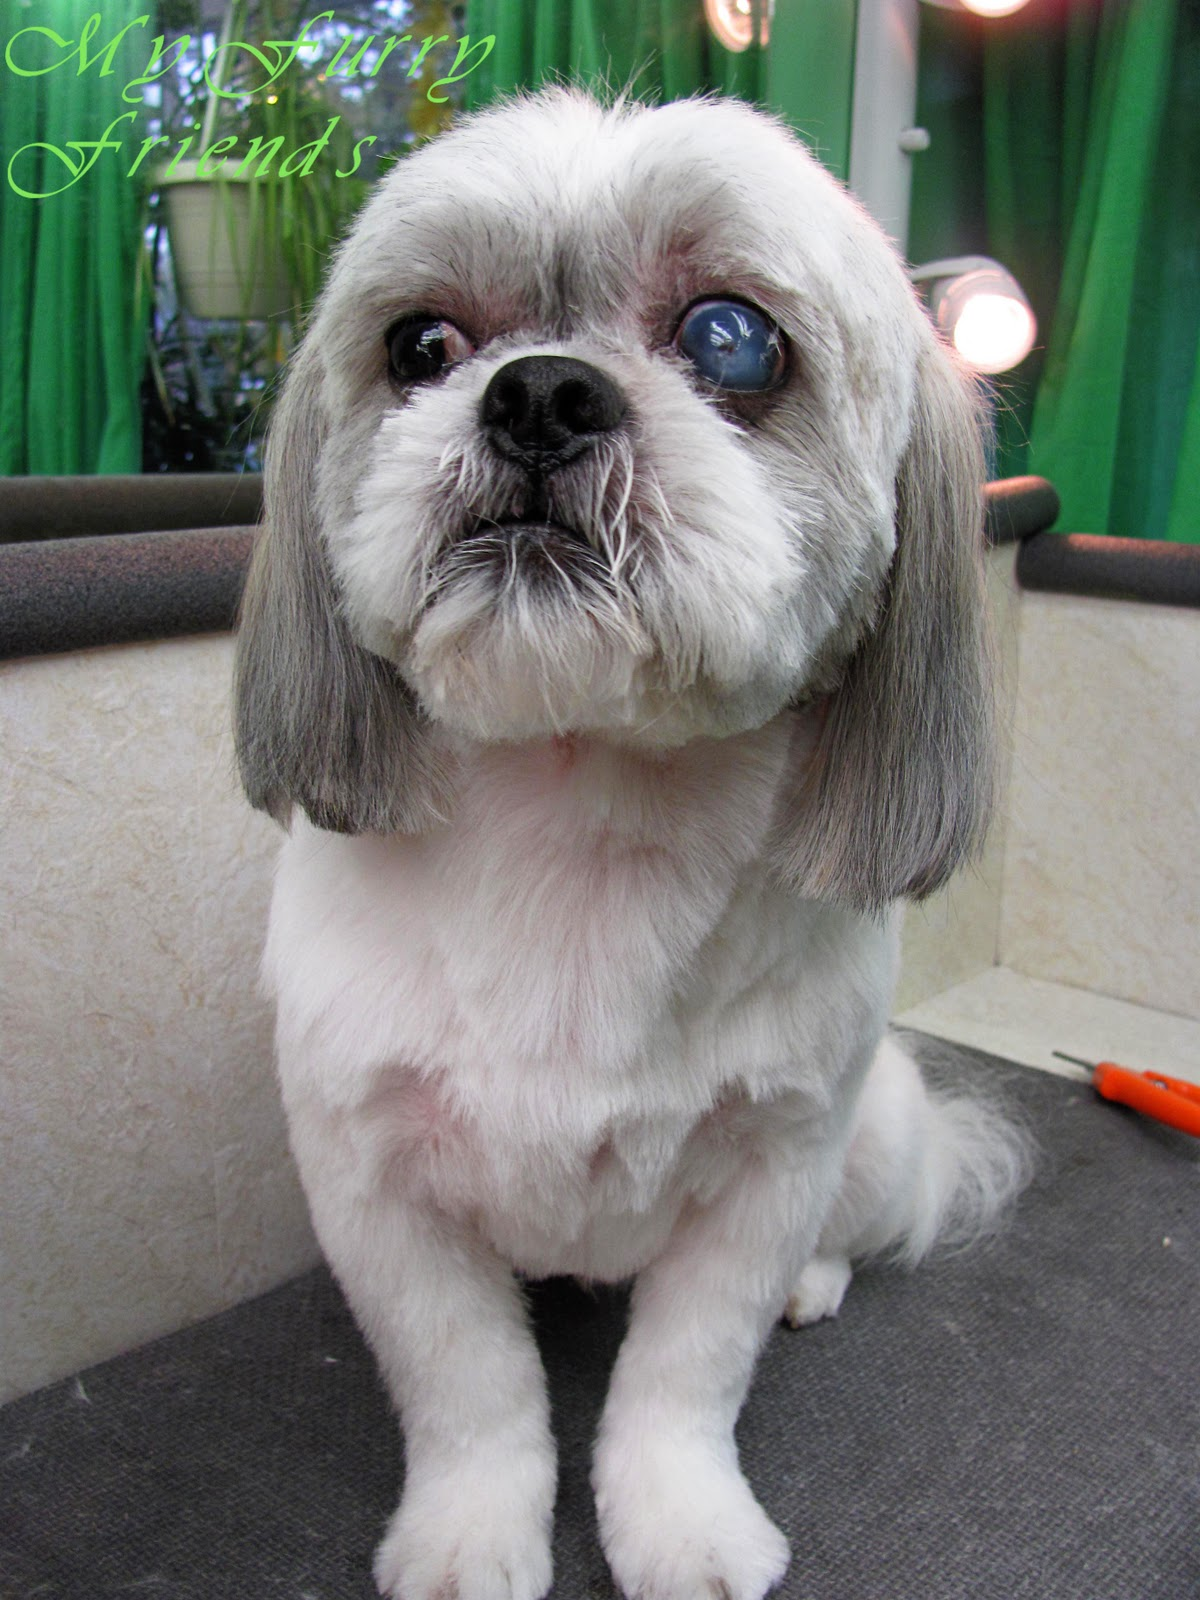 Pet Grooming: The Good, The Bad, & The Furry: Shih-Tzu day